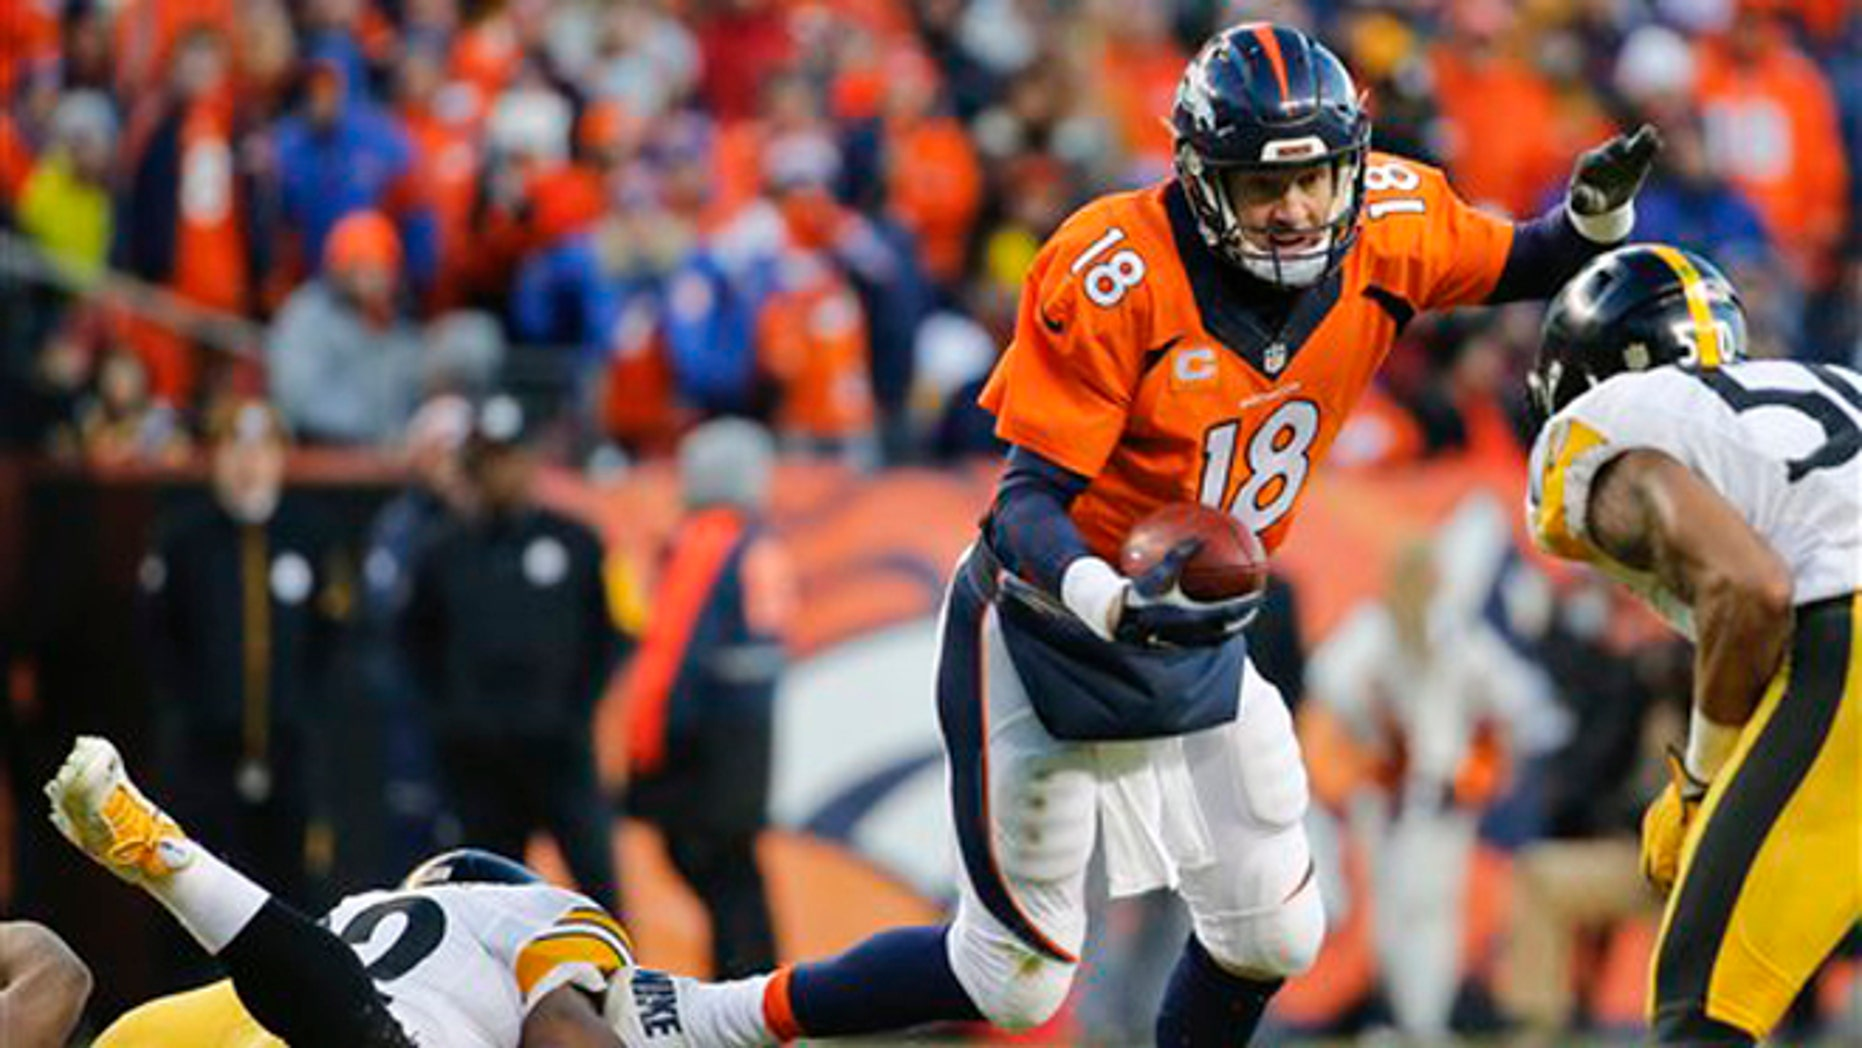 Denver Broncos quarterback Peyton Manning is sacked by Pittsburgh Steelers outside linebacker James Harrison, left, during the second half in an NFL football divisional playoff game, Sunday, Jan. 17, 2016, in Denver. (AP Photo/Jack Dempsey)